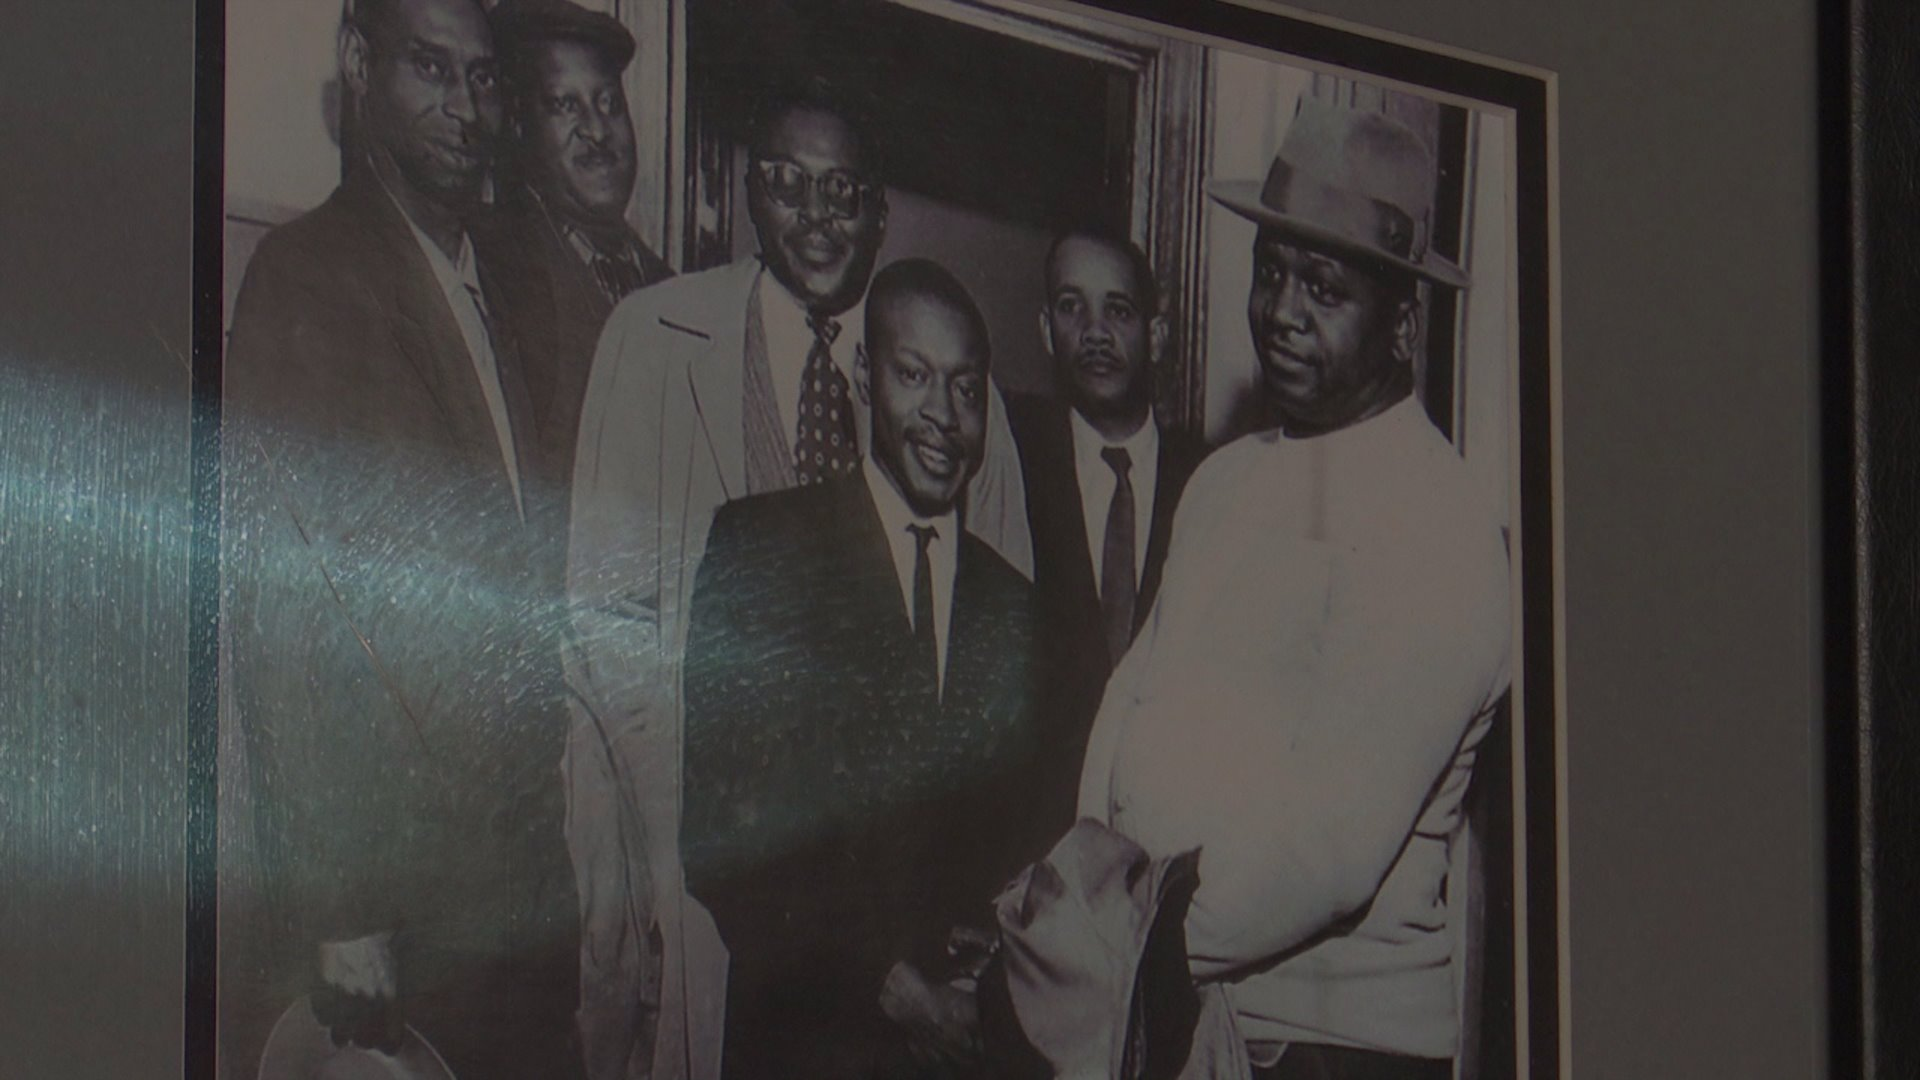 Caddy remembers actions of Greensboro Six during early days of Civil Rights movement